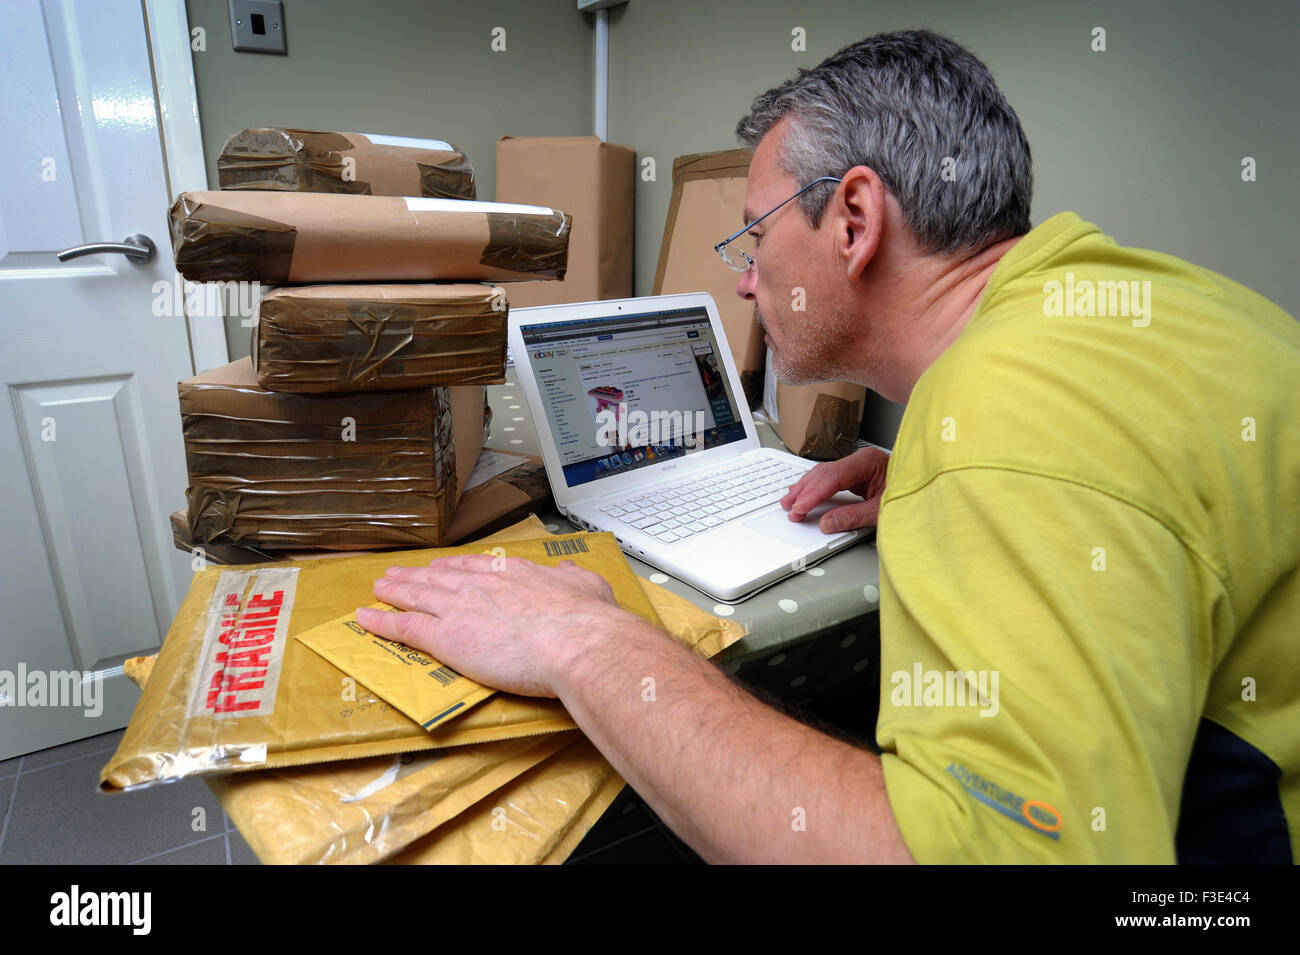 man-at-home-with-parcels-selling-items-o